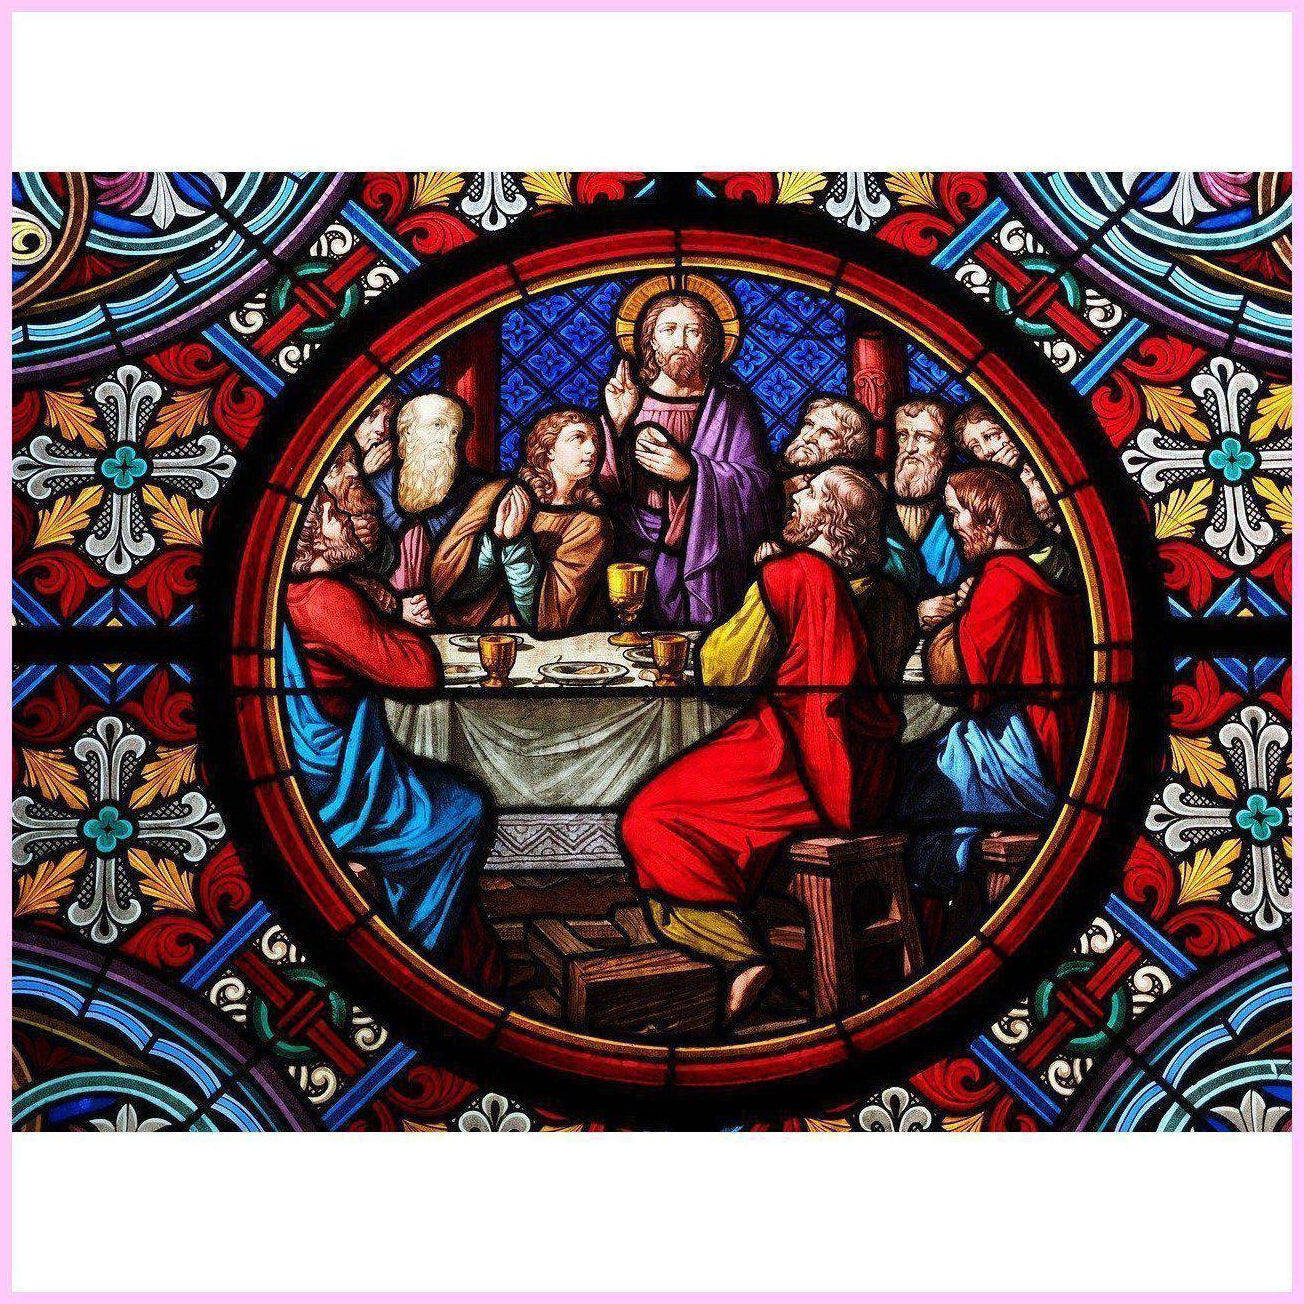 Cathedral Last Supper-Diamond Painting Kit-30x40cm (12x16 in)-Square-Heartful Diamonds